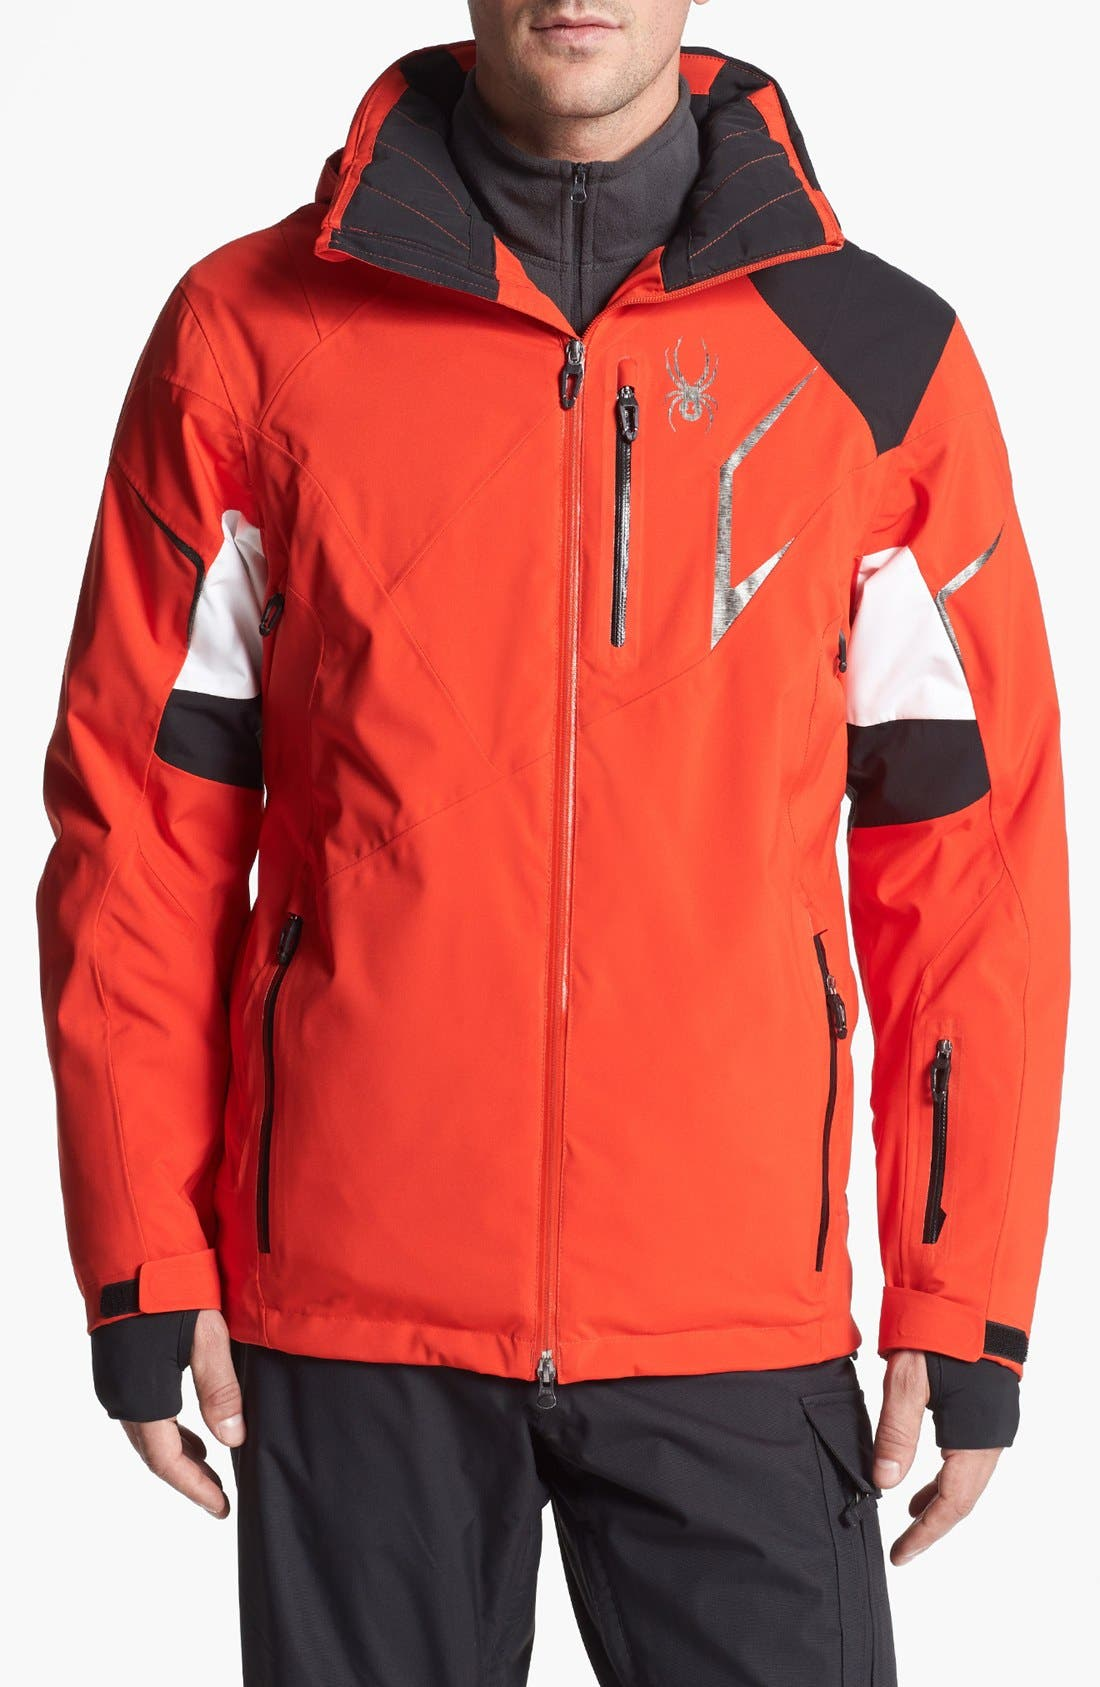 Alternate Image 1 Selected - Spyder 'Leader' Jacket